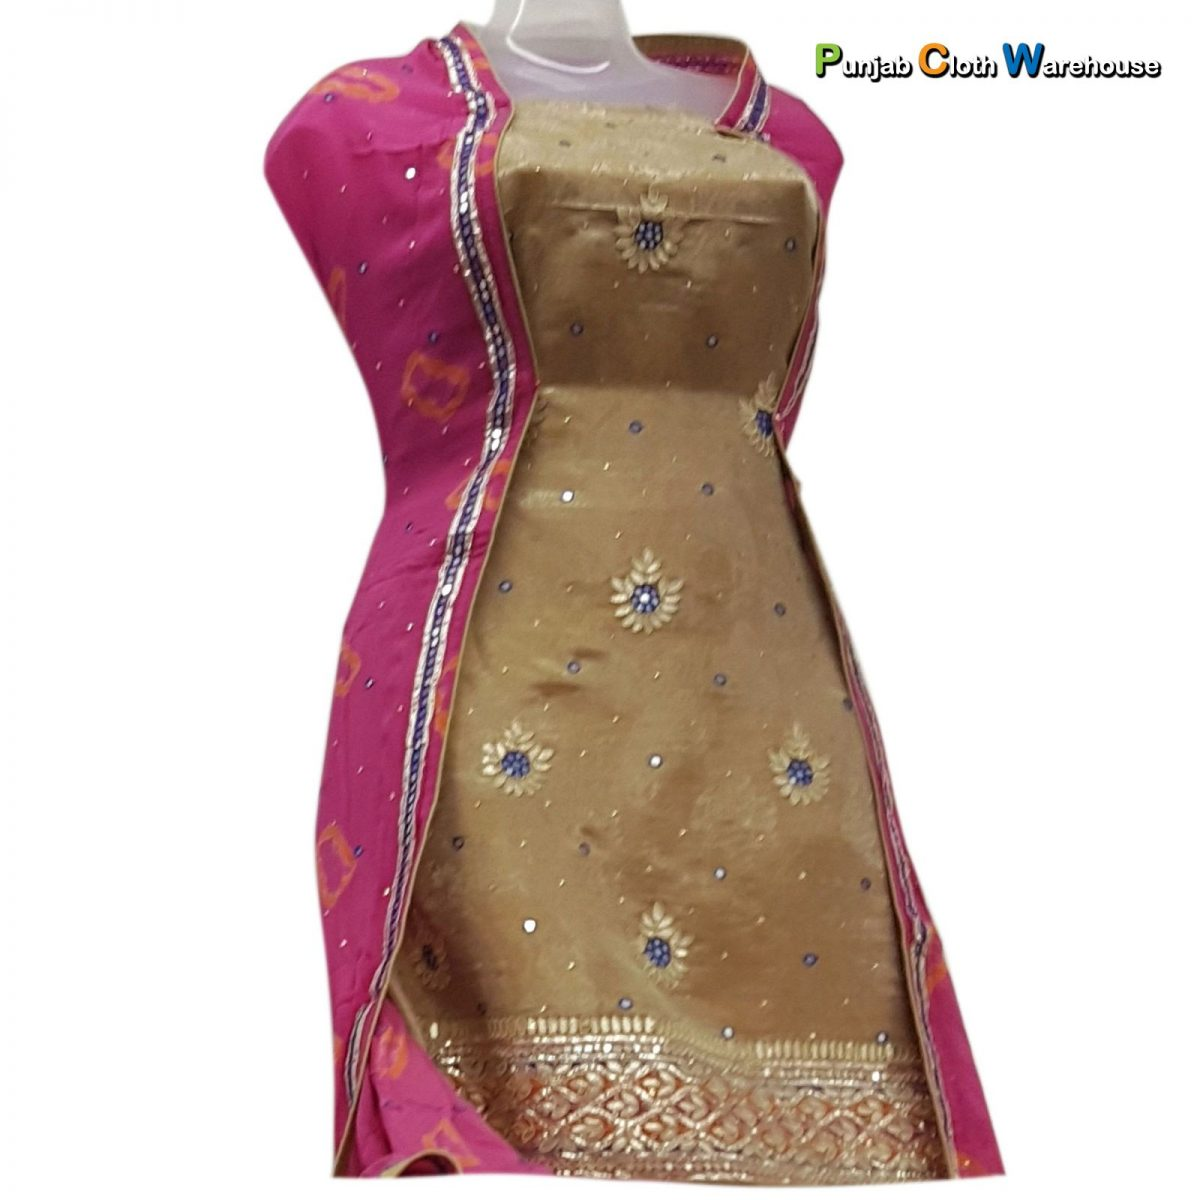 Ladies Suits - Cut Piece - Punjab Cloth Warehouse, Surrey (3)